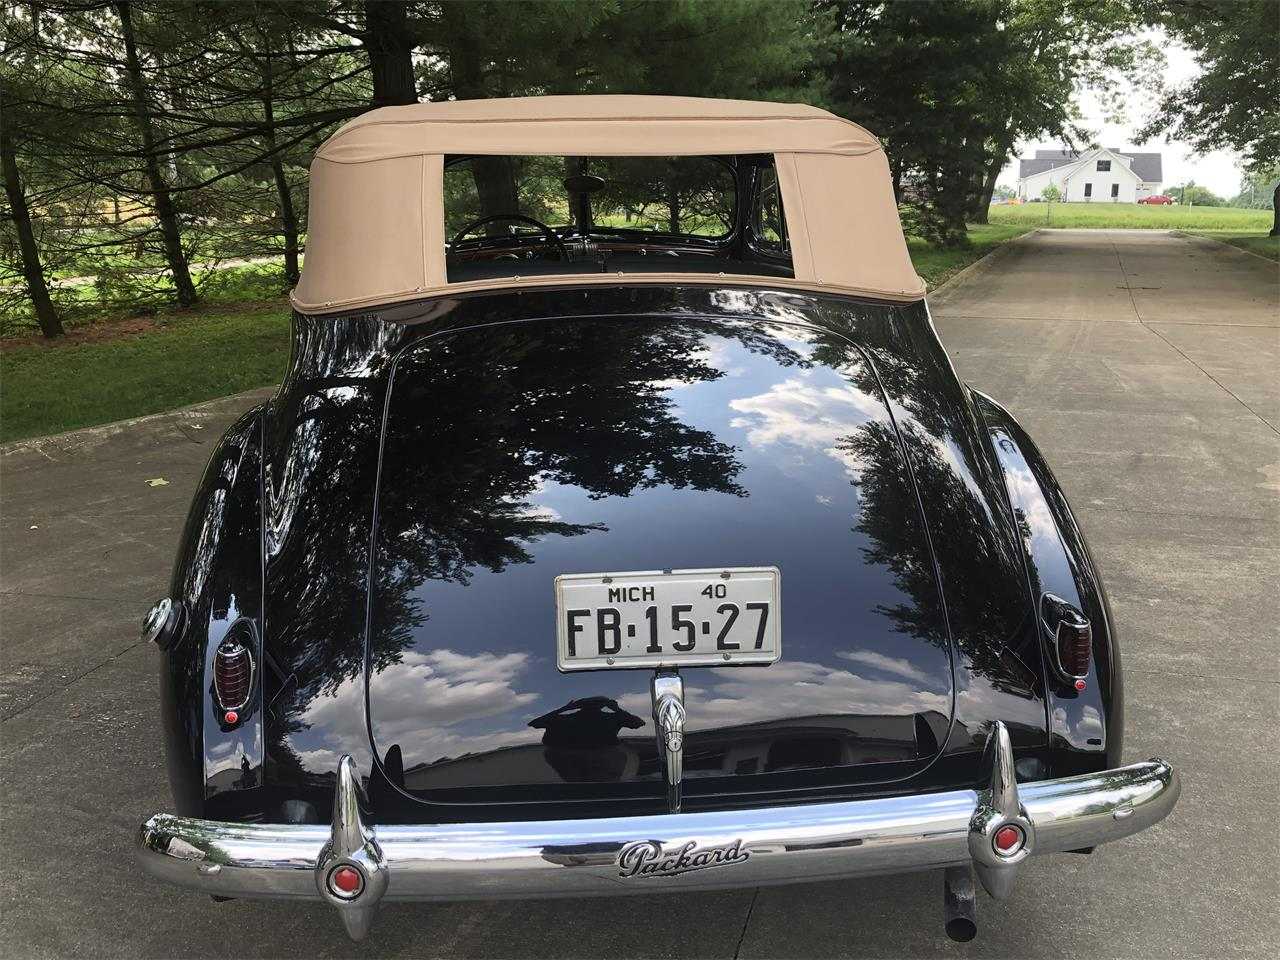 1940 Packard 160 (CC-1241126) for sale in Bedford Hts., Ohio